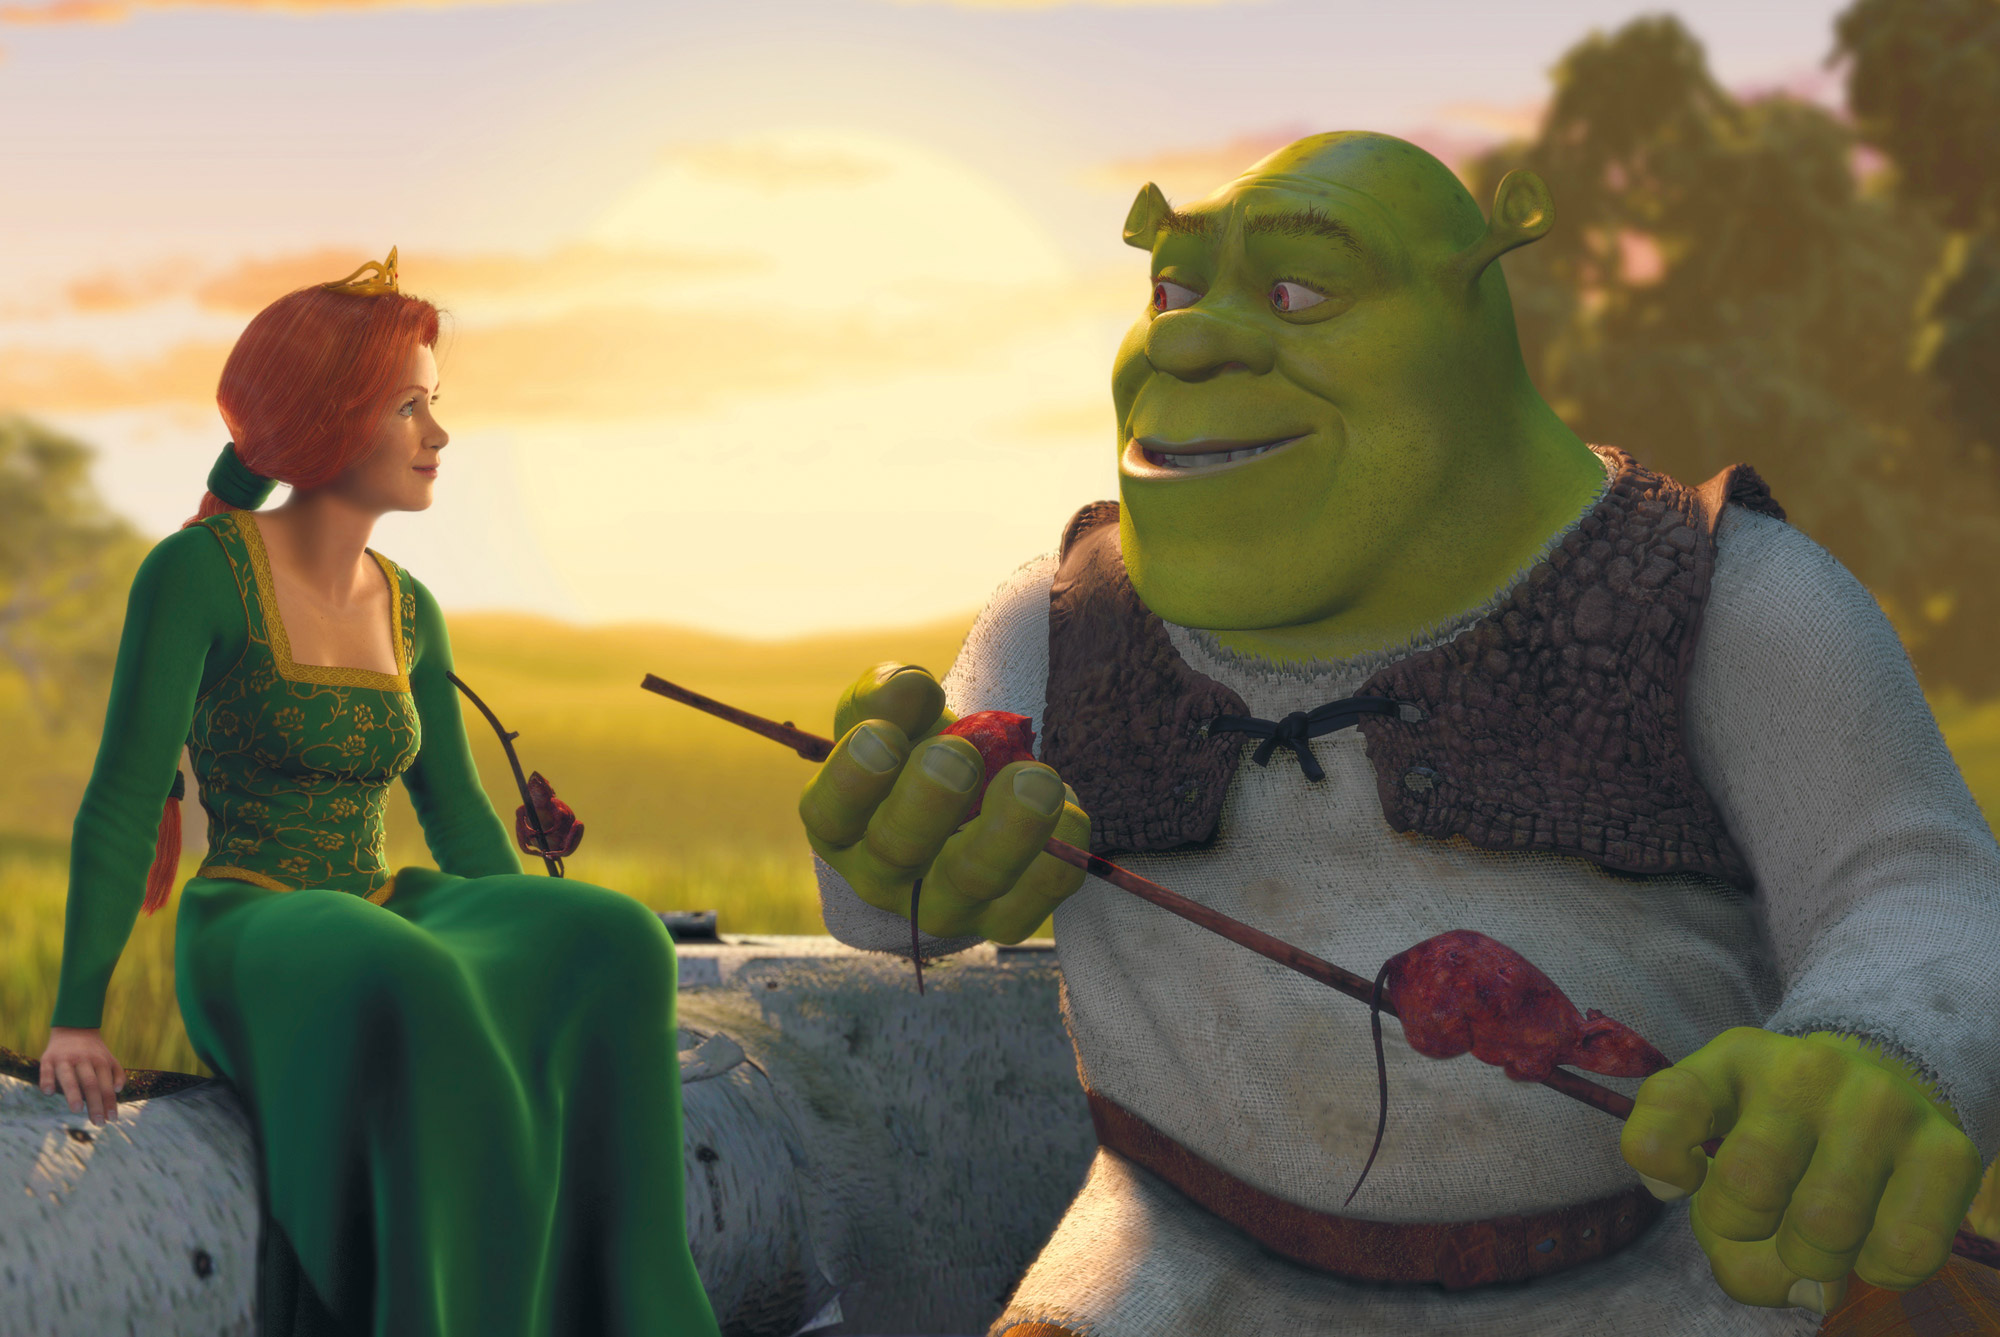 Family movies this weekend shrek kung fu panda 3 and joy for New kid movies coming out this weekend